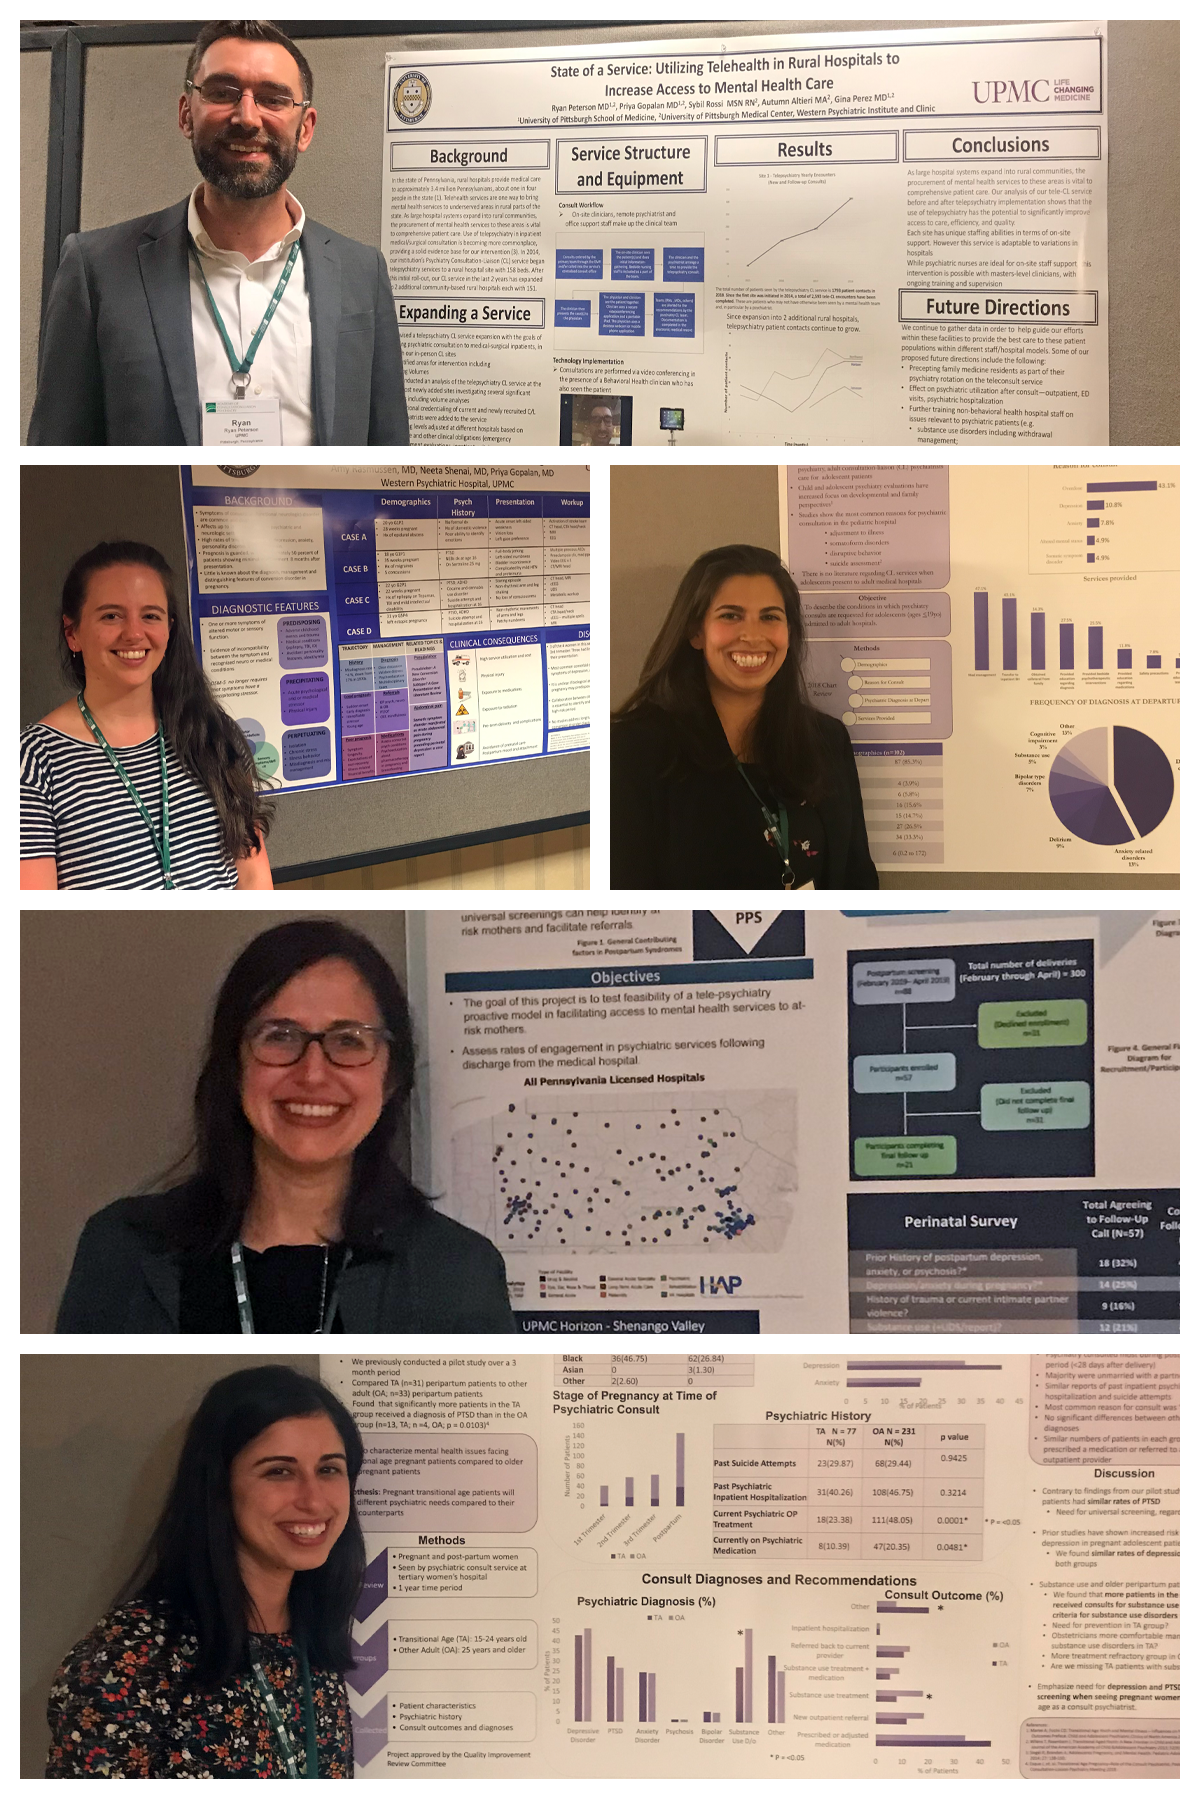 2019 ACLP Poster Session 1